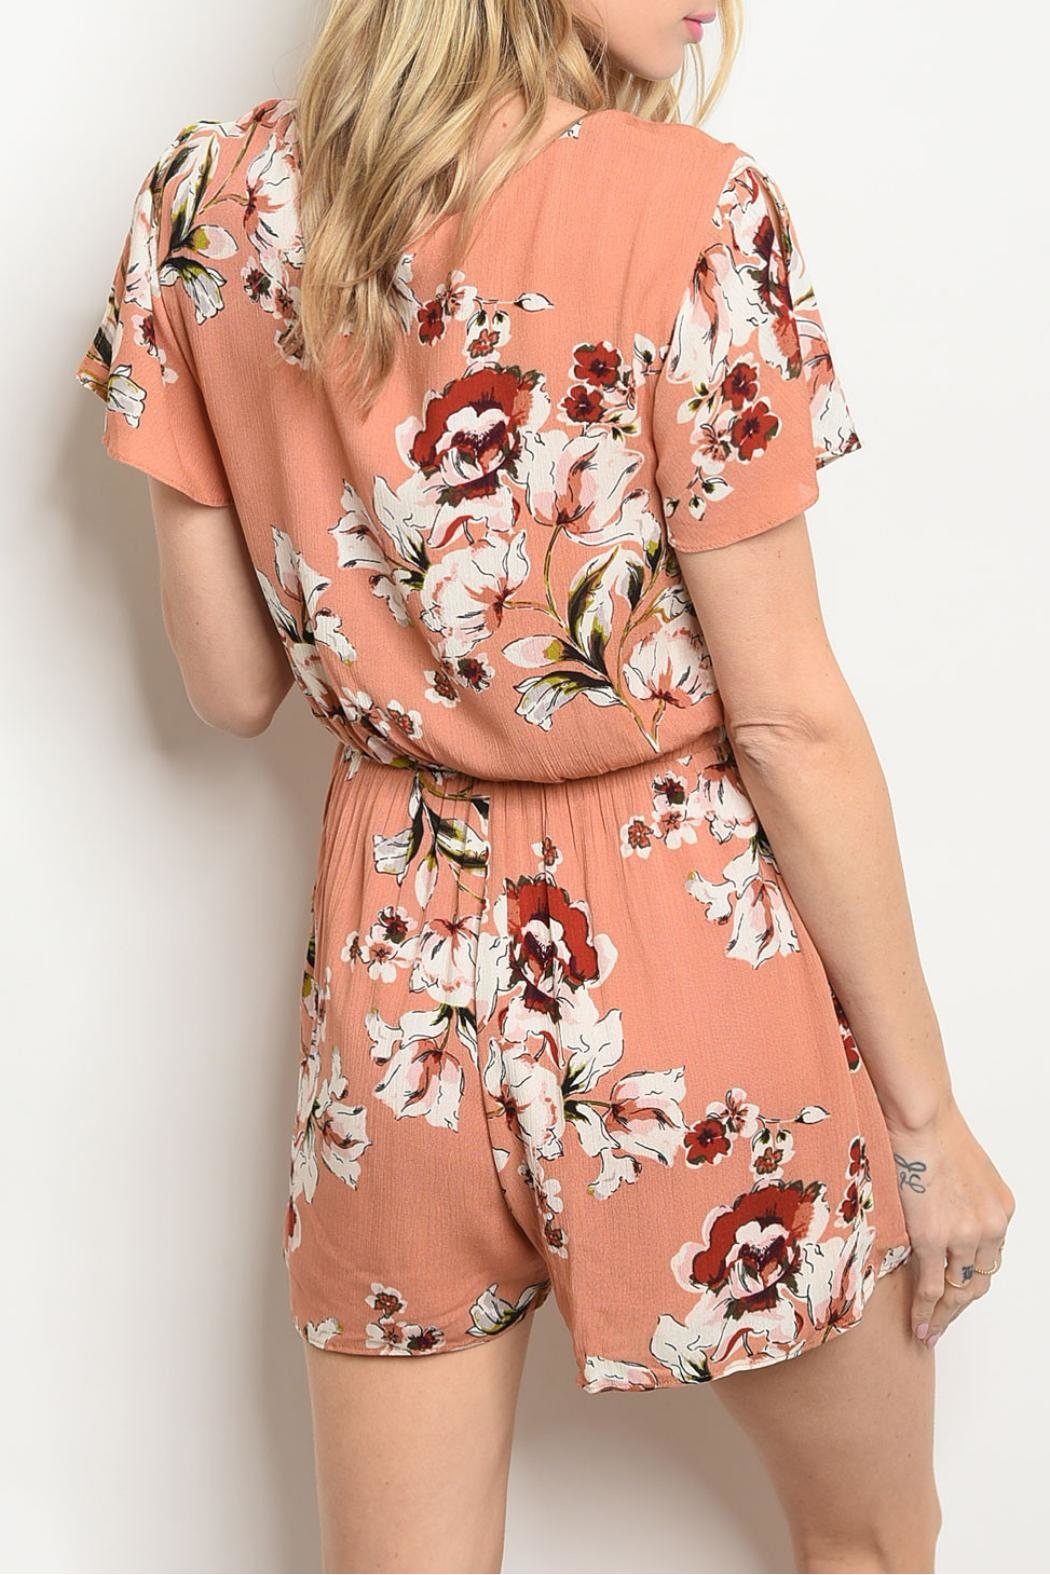 Everly Mauve Floral Romper - Front Full Image